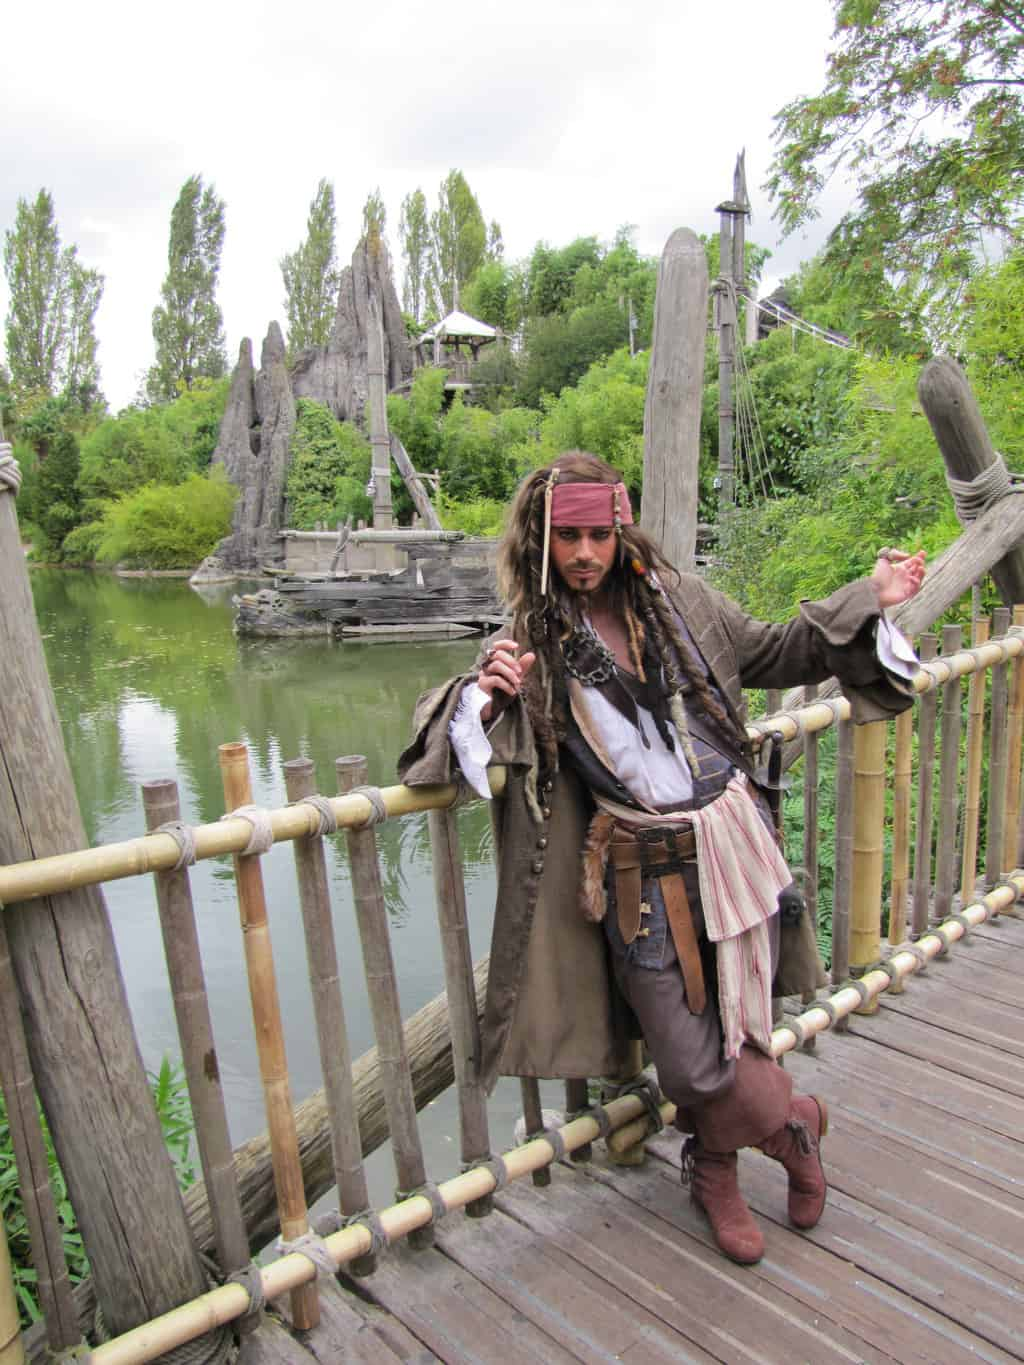 Jack Sparrow doing daily Meet'n'Greets